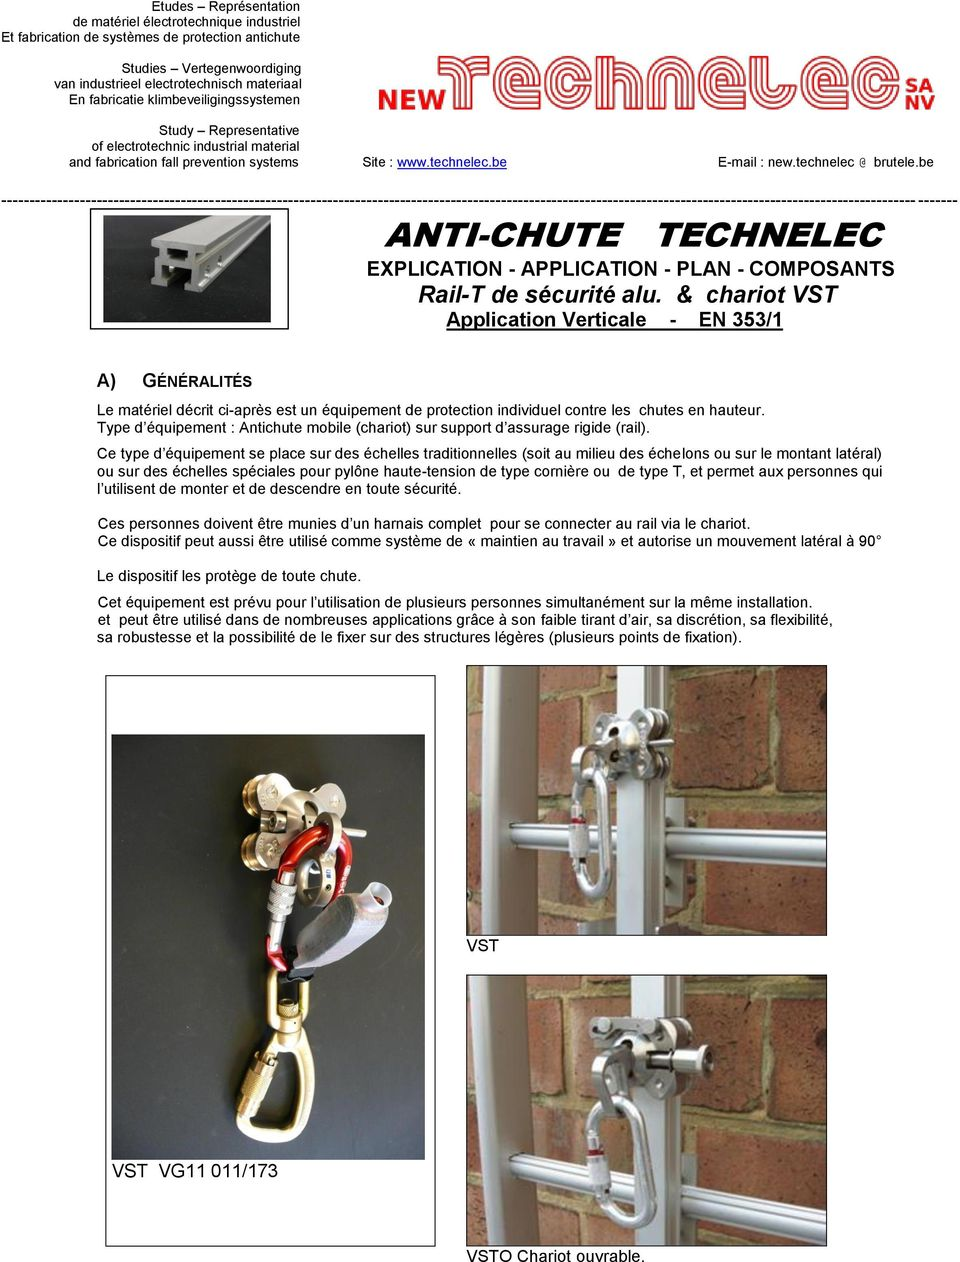 be ------------------------------------------------------------------------------------------------------------------------------------------------------------------- ------- ANTI-CHUTE TECHNELEC